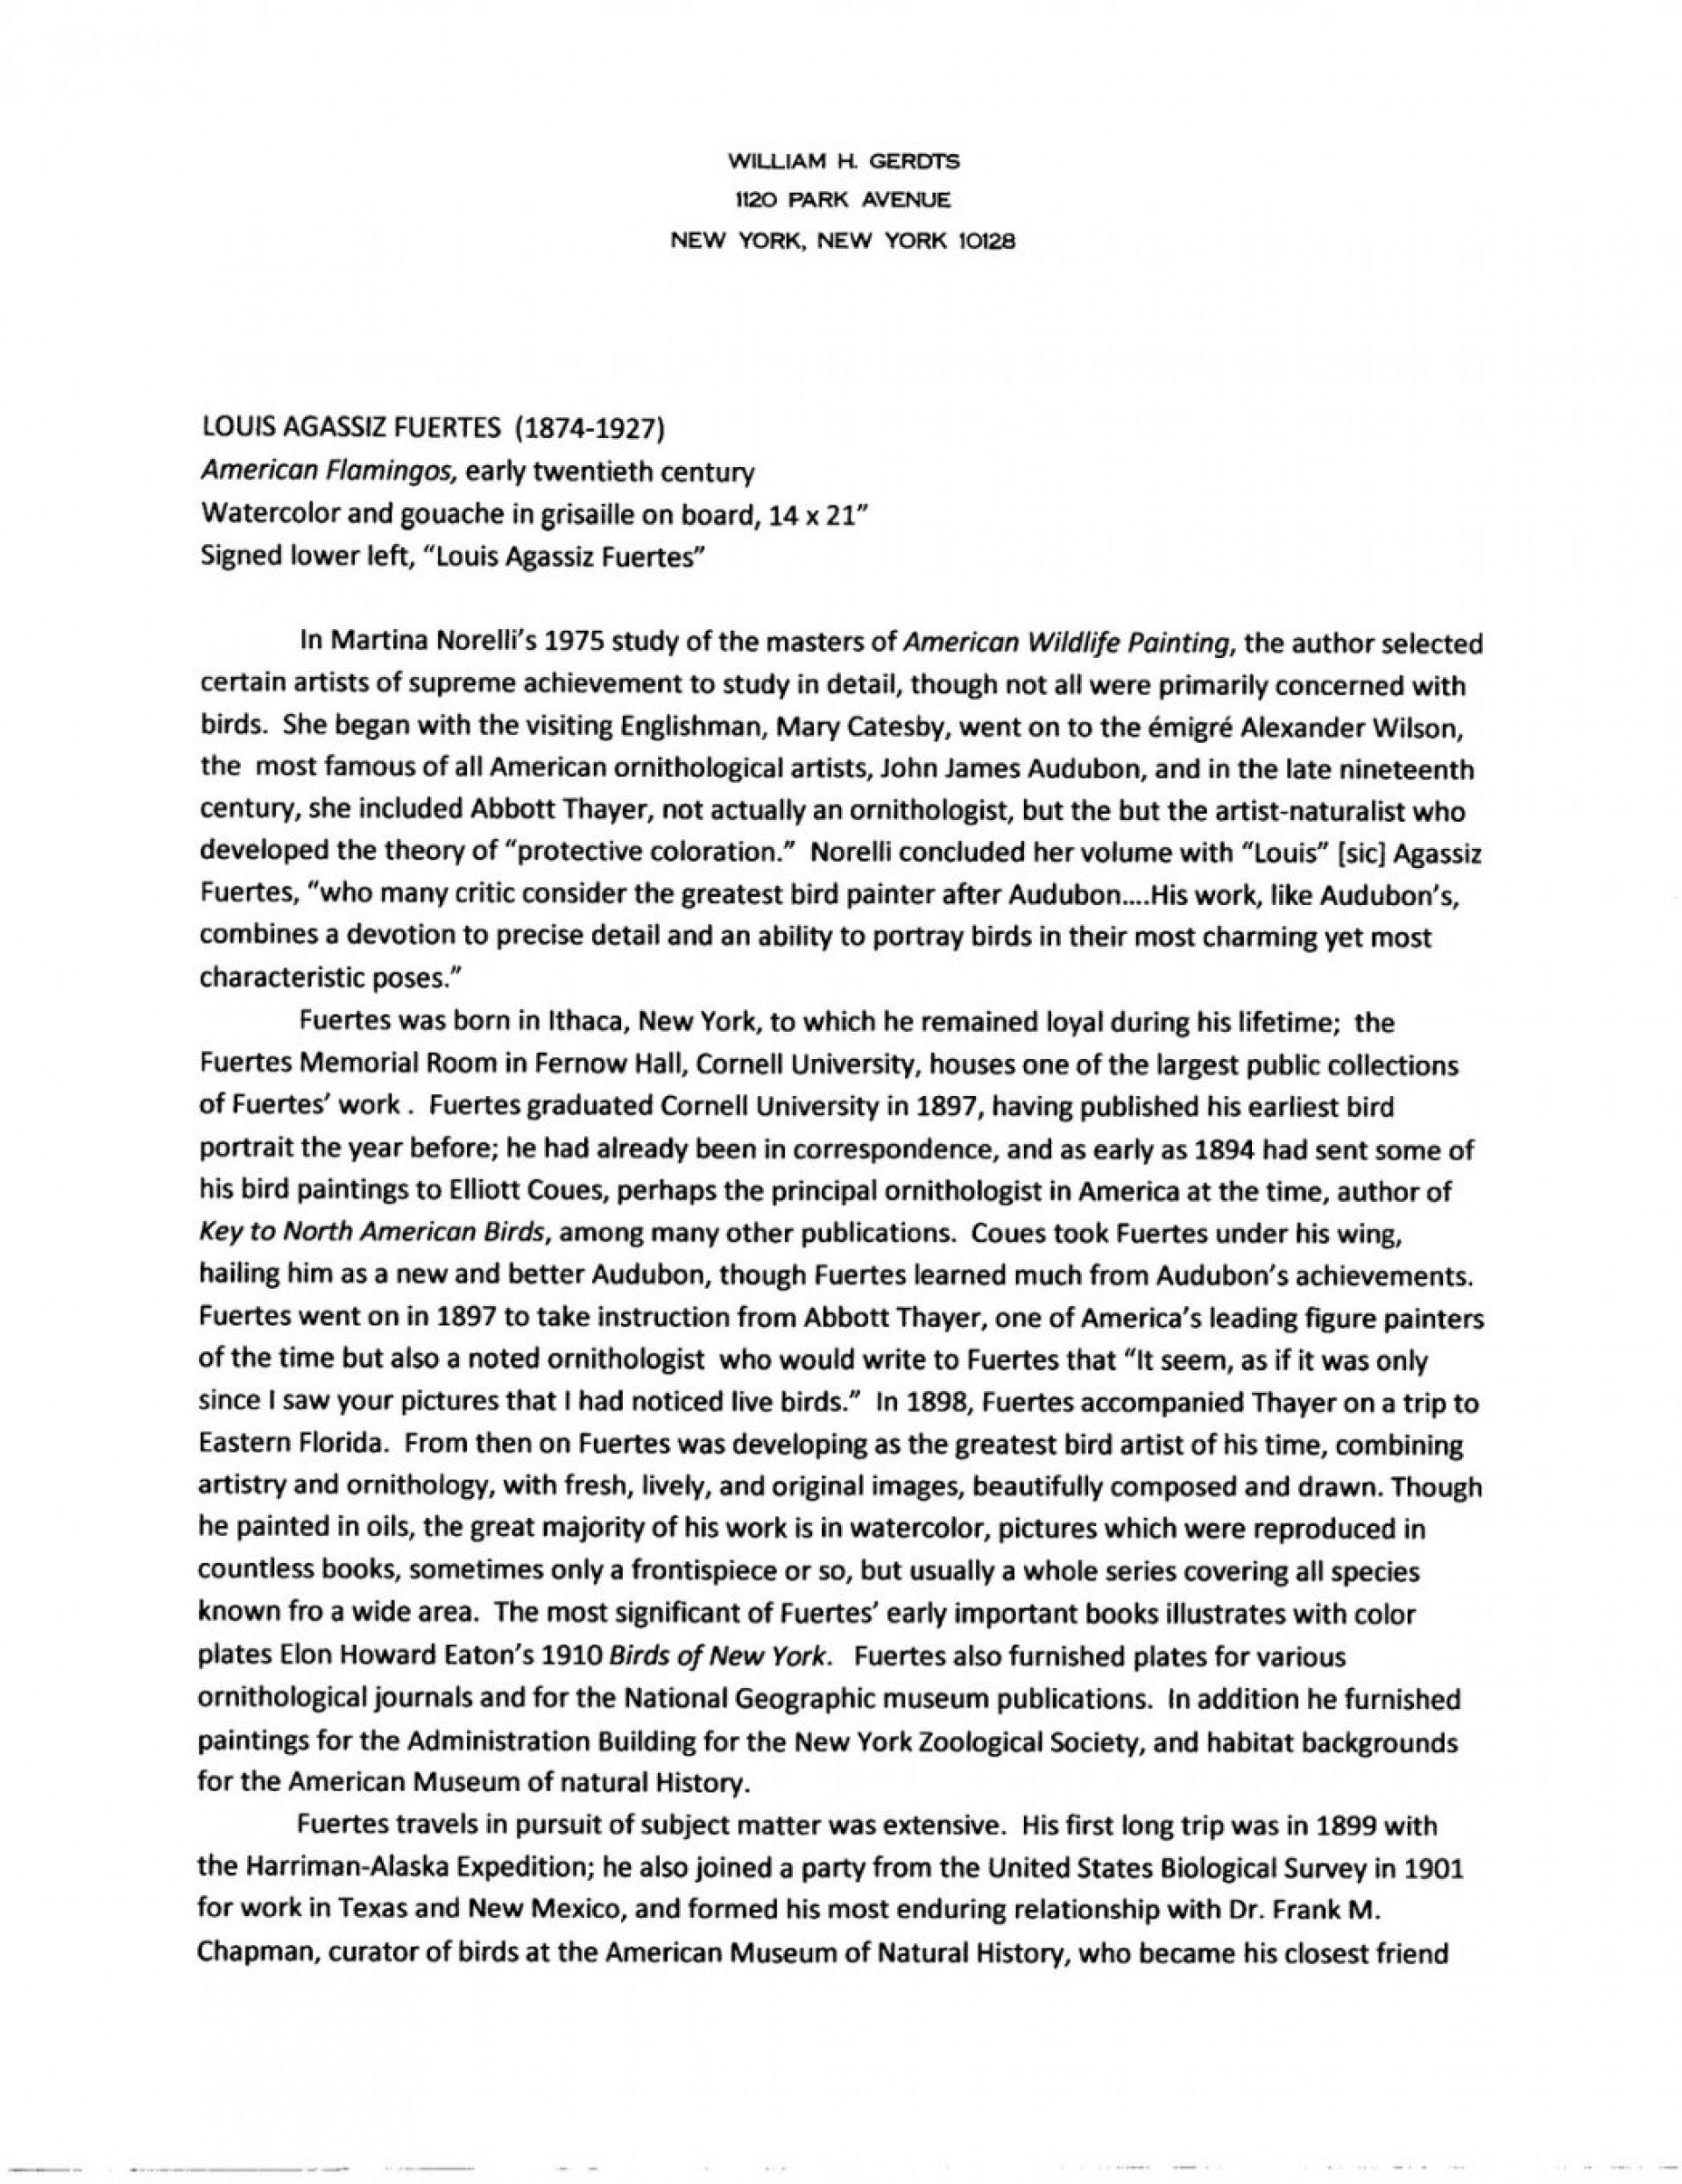 018 Leadership Essays Essay Example Personal Mba Statement For College Fuertesamericanflaming Examples Of Striking Samples Pdf 1920